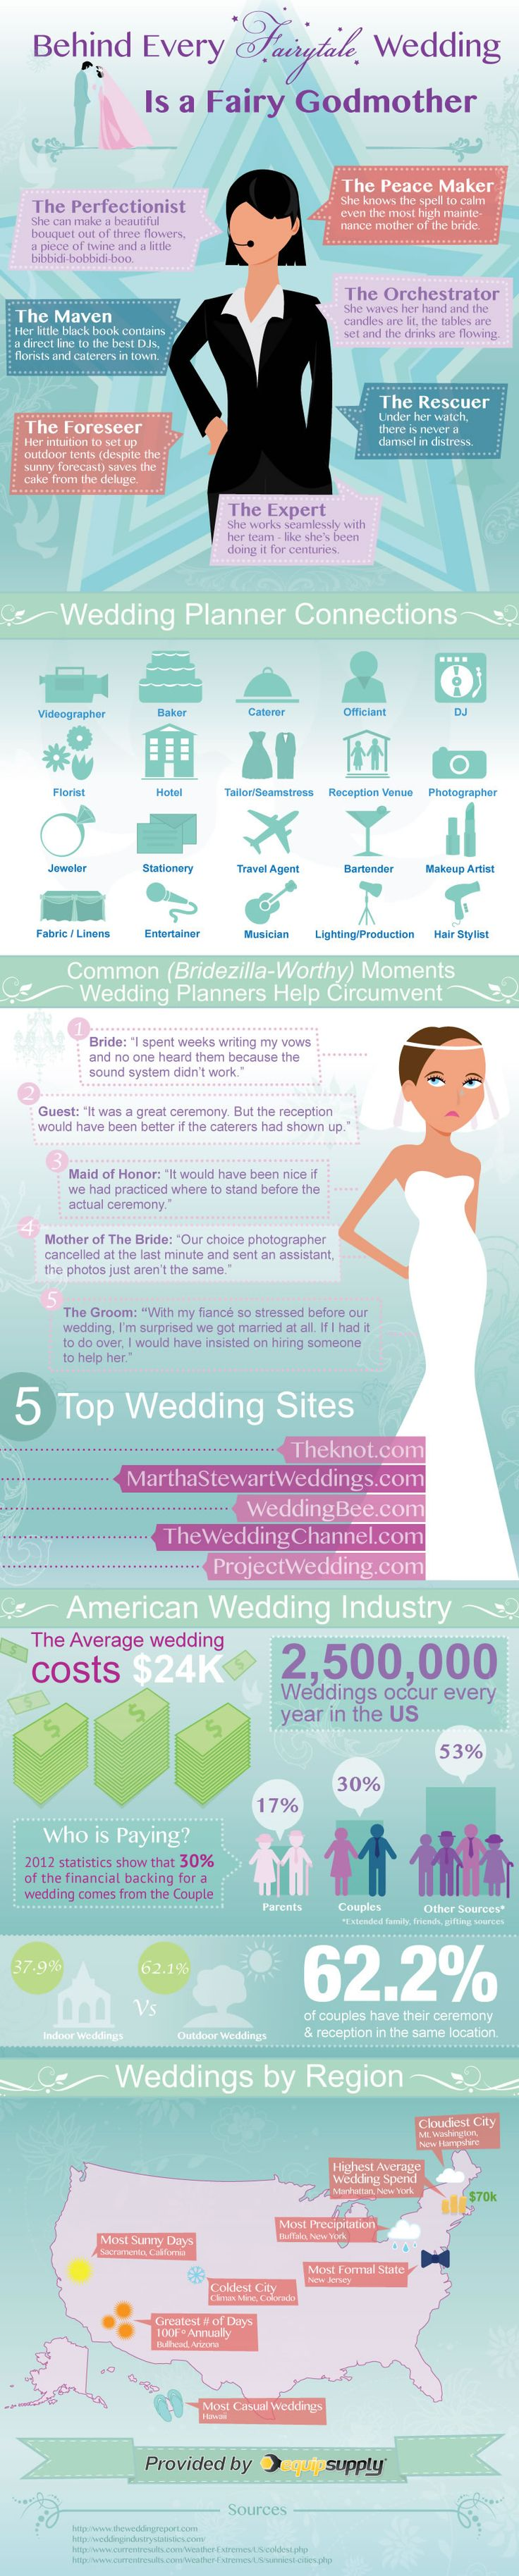 THE PERFECT WEDDING PLANNER This infographic outlines trending facts as well as the part a wedding planner plays in the development of a wedding ceremony. You will find related industry trends this past year and related data, it gives a unique look at wedding planners and the wedding ceremony process.